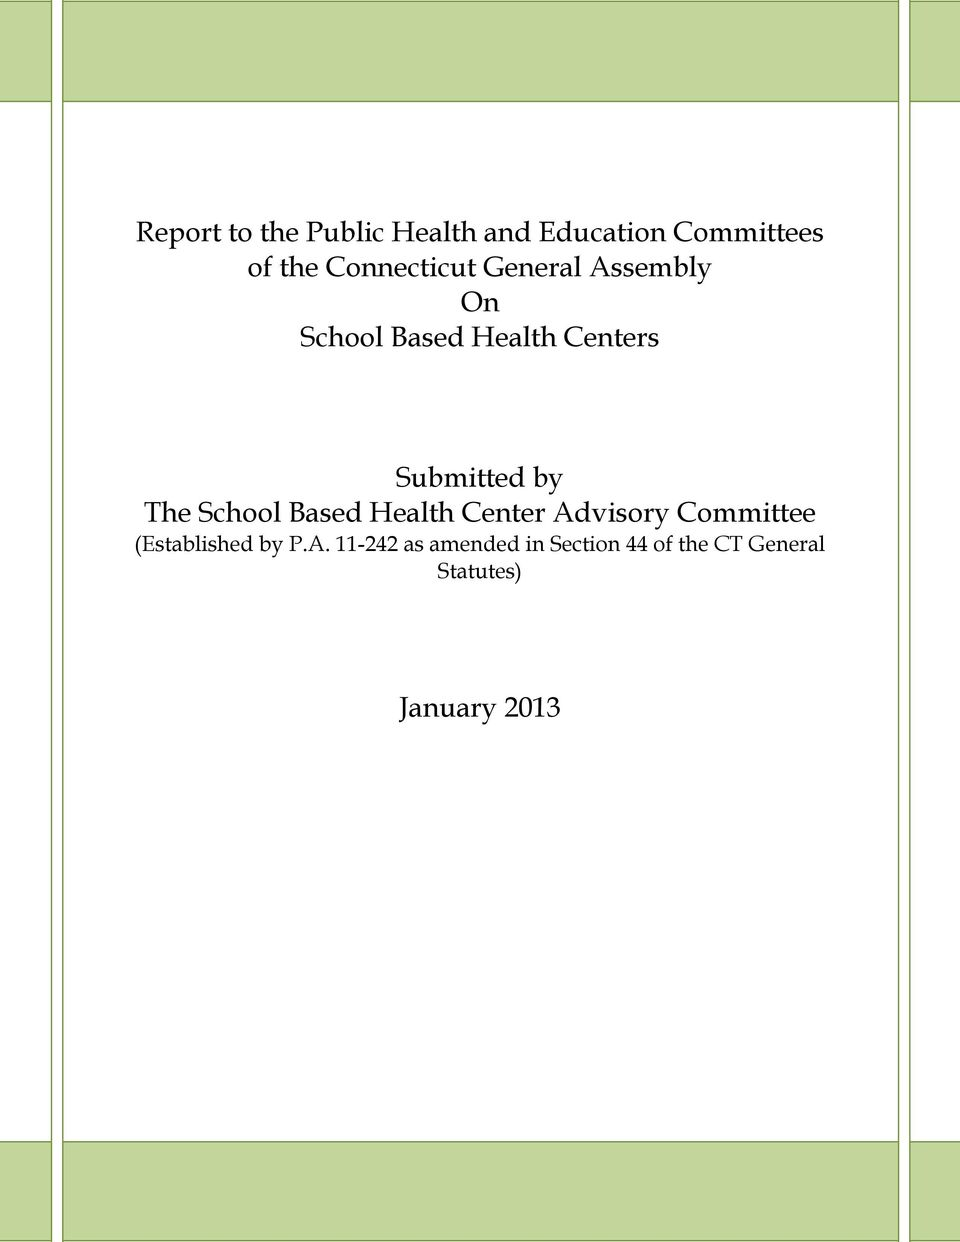 Submitted by The School Based Health Center Advisory Committee